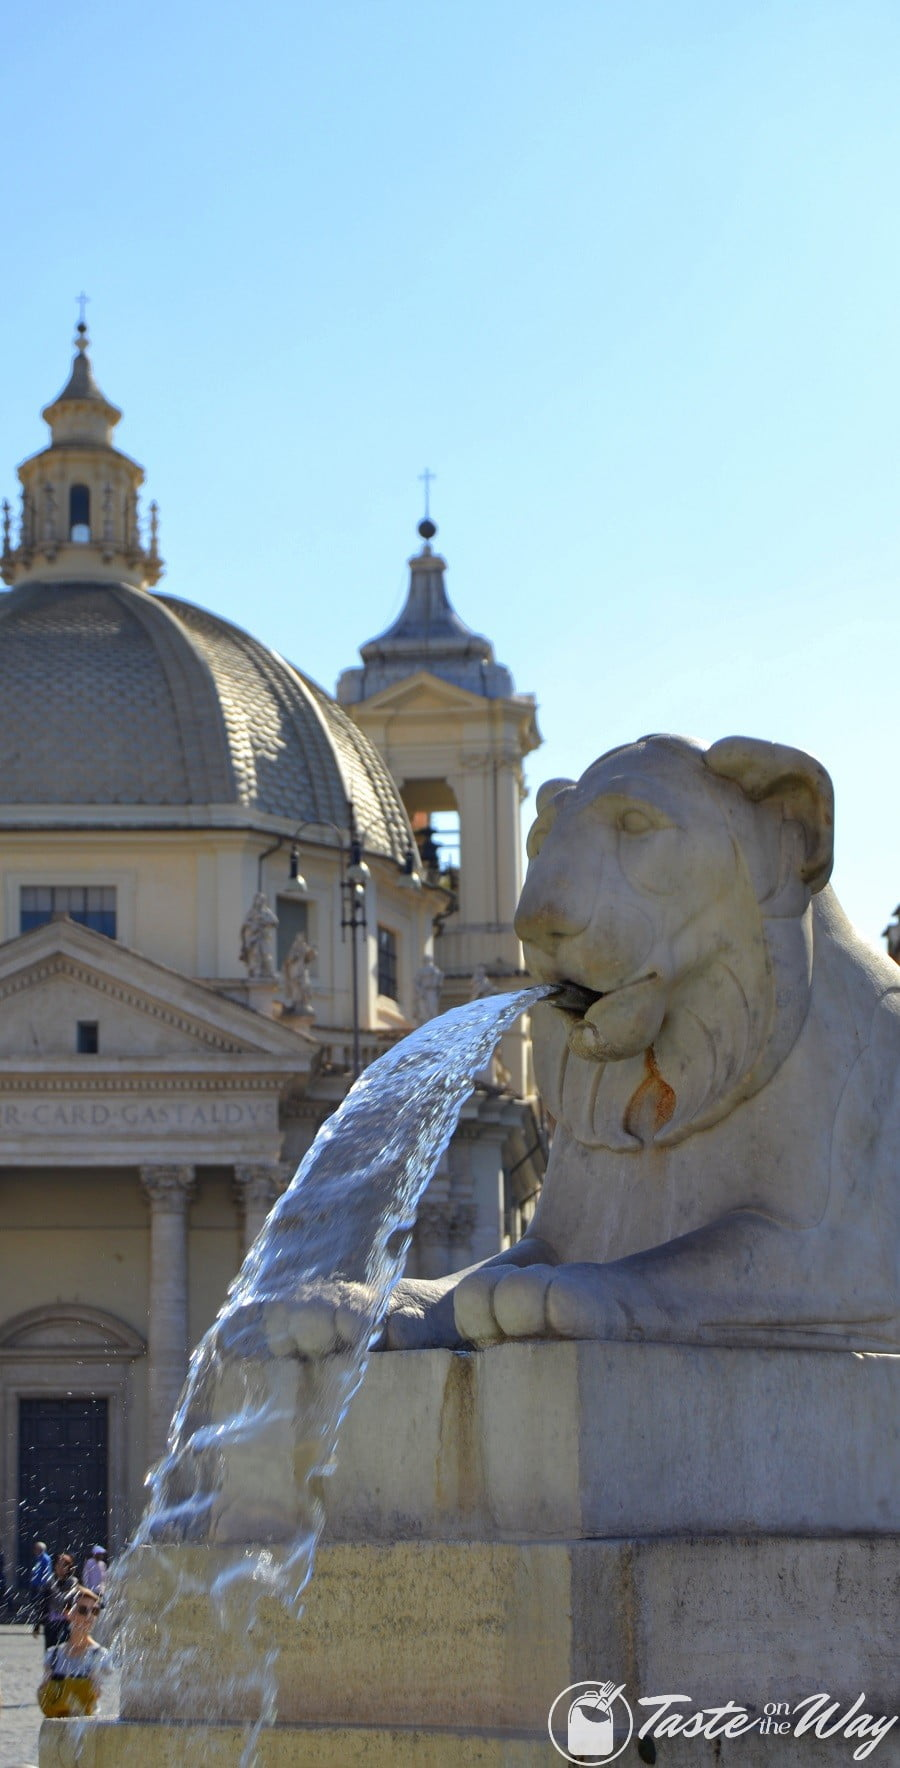 Checking out the fountains is one of the top #thingstodo in #Rome, #Italy. Check out for more! #travel #photography